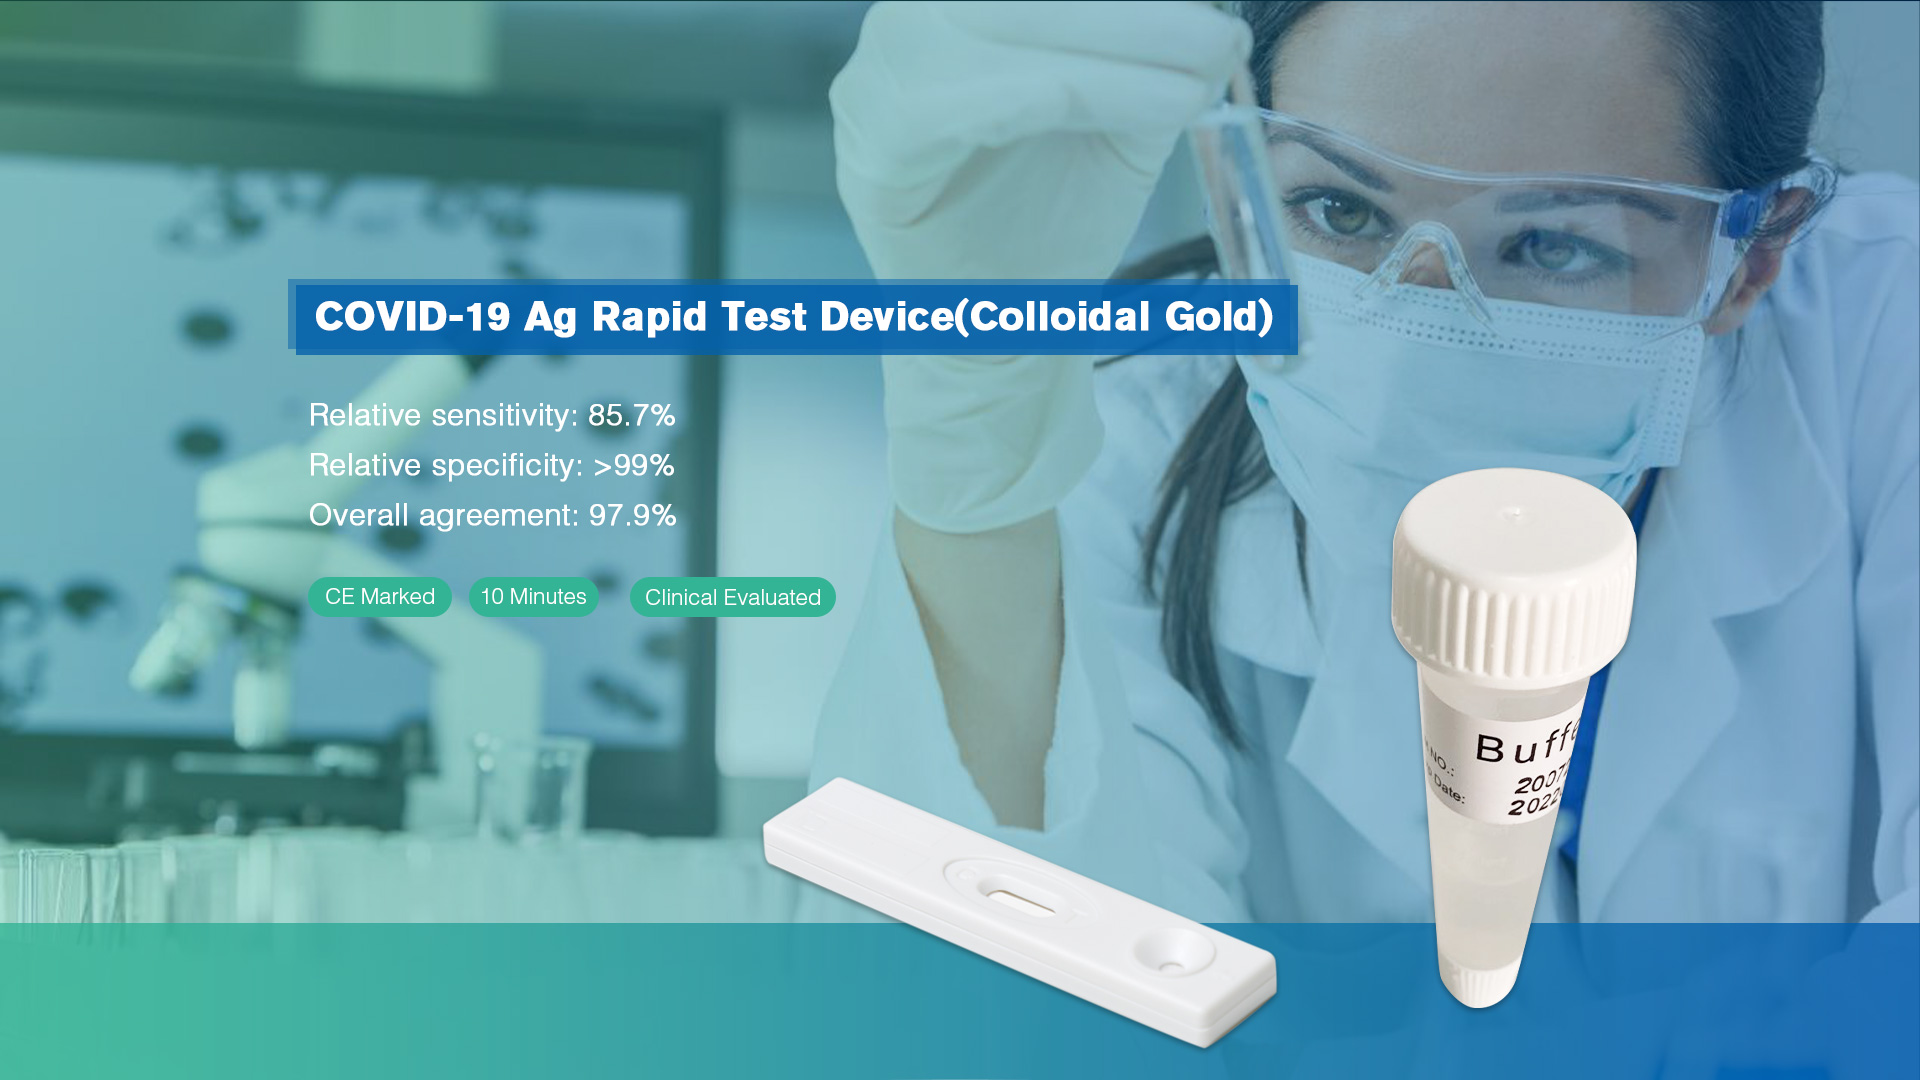 COVID-19-Ag Rapid Test Device